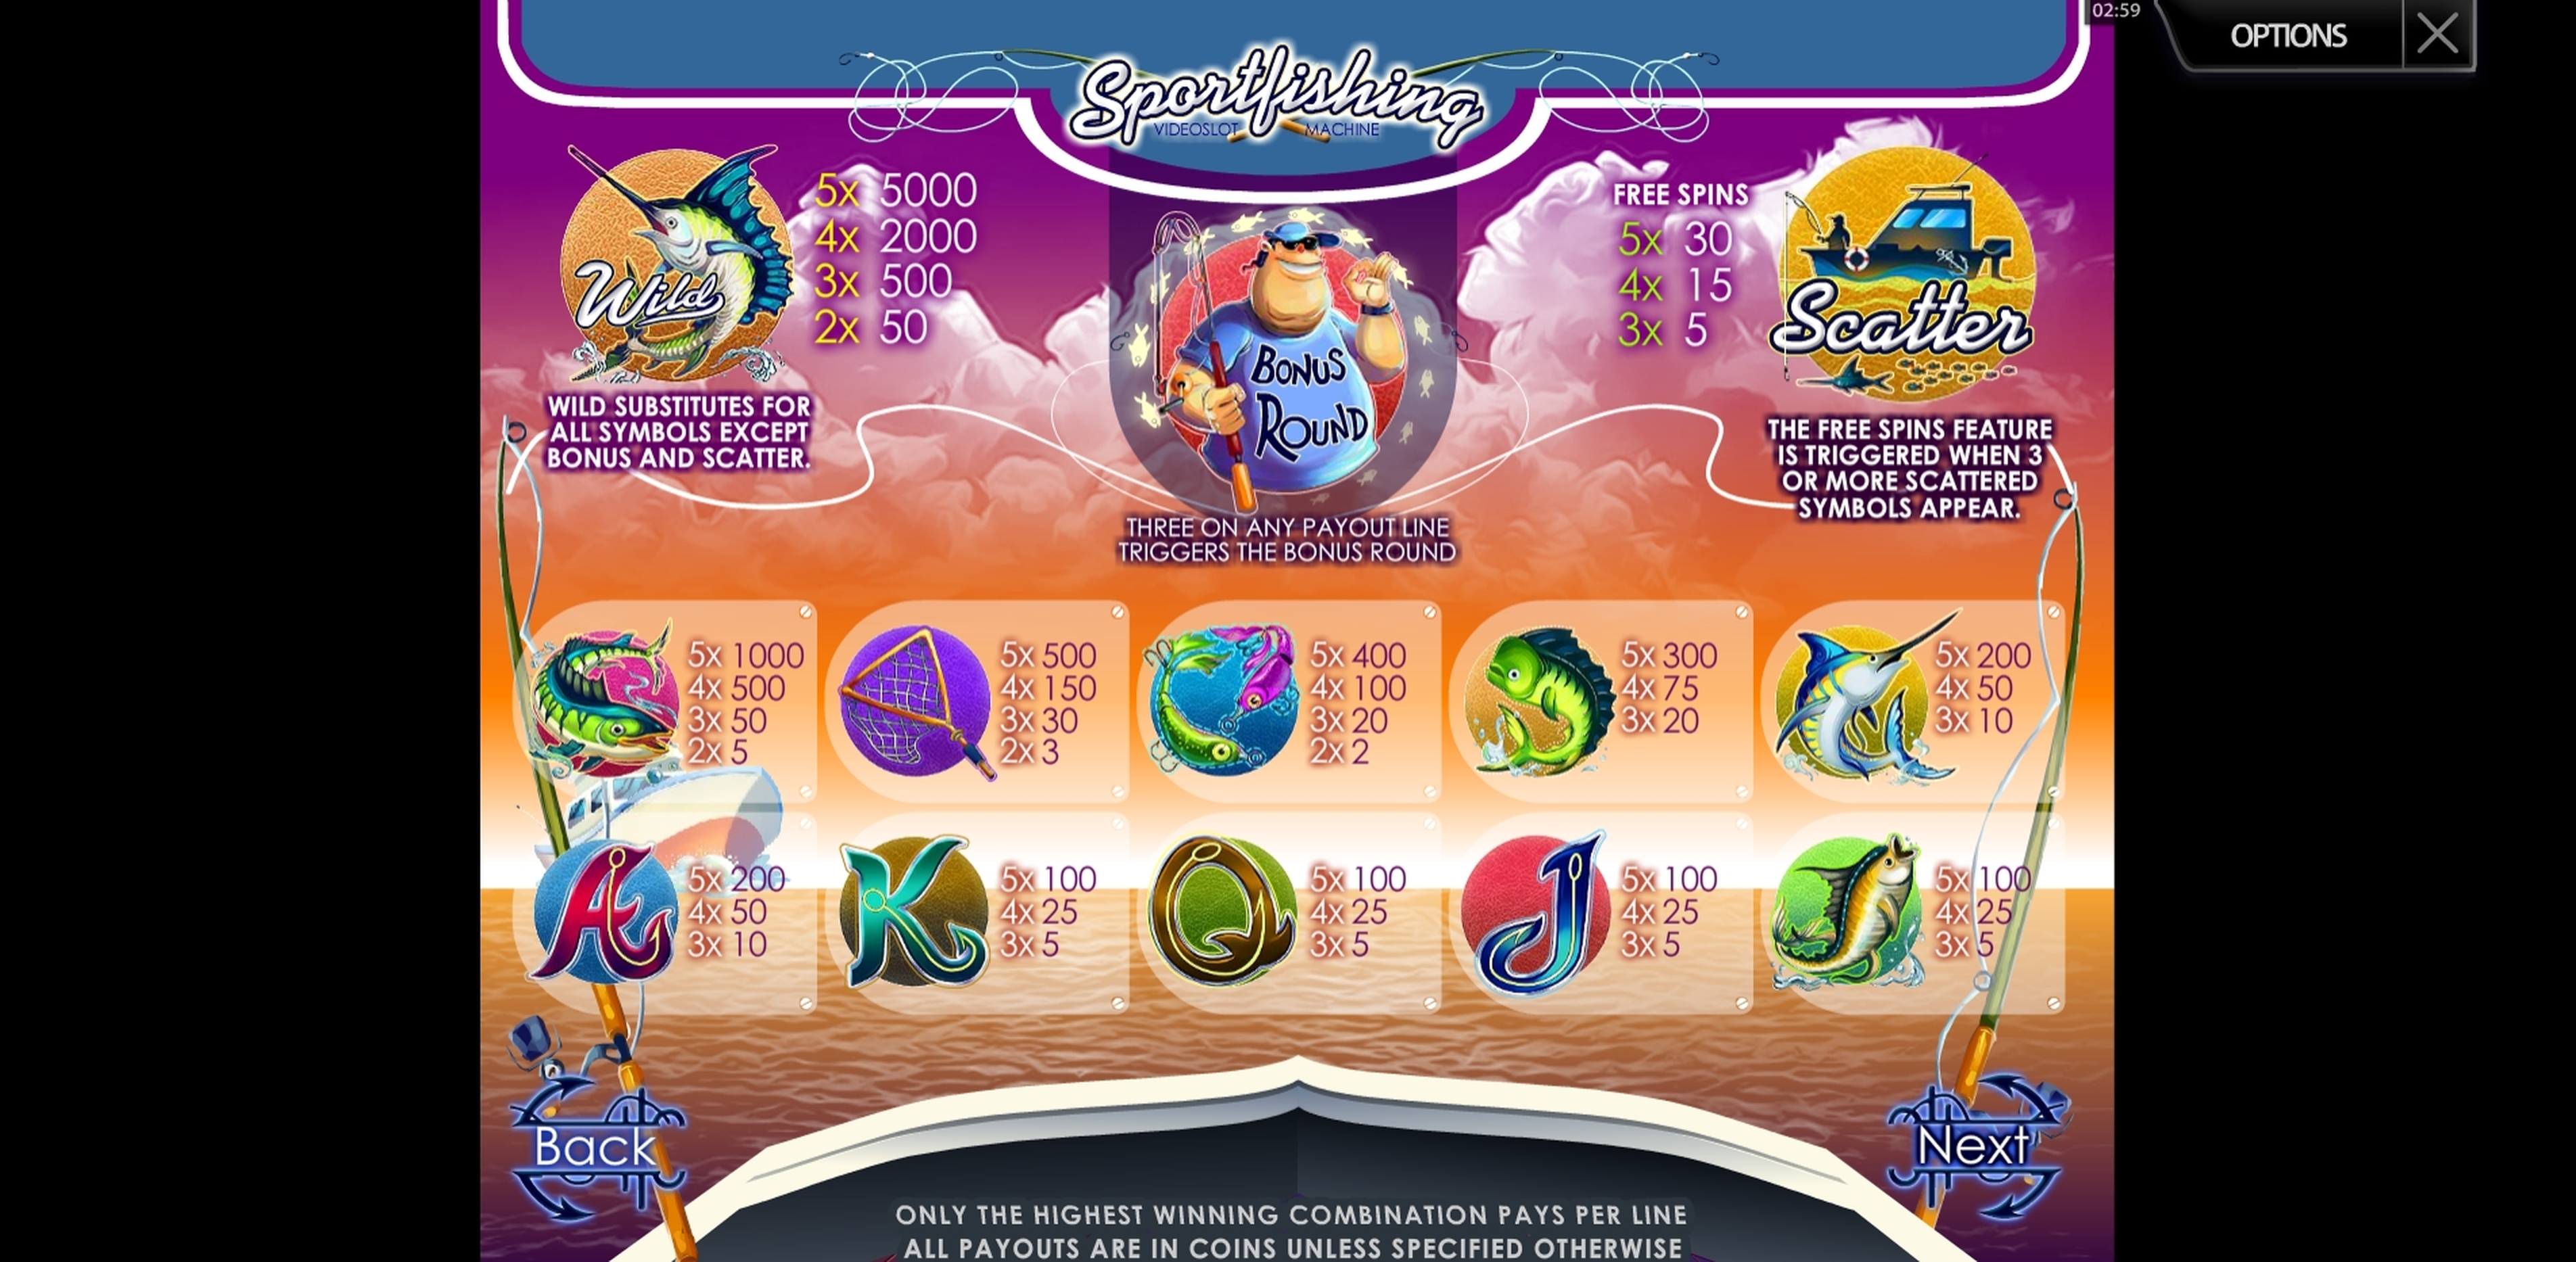 Info of Sportsfishing Slot Game by Multislot